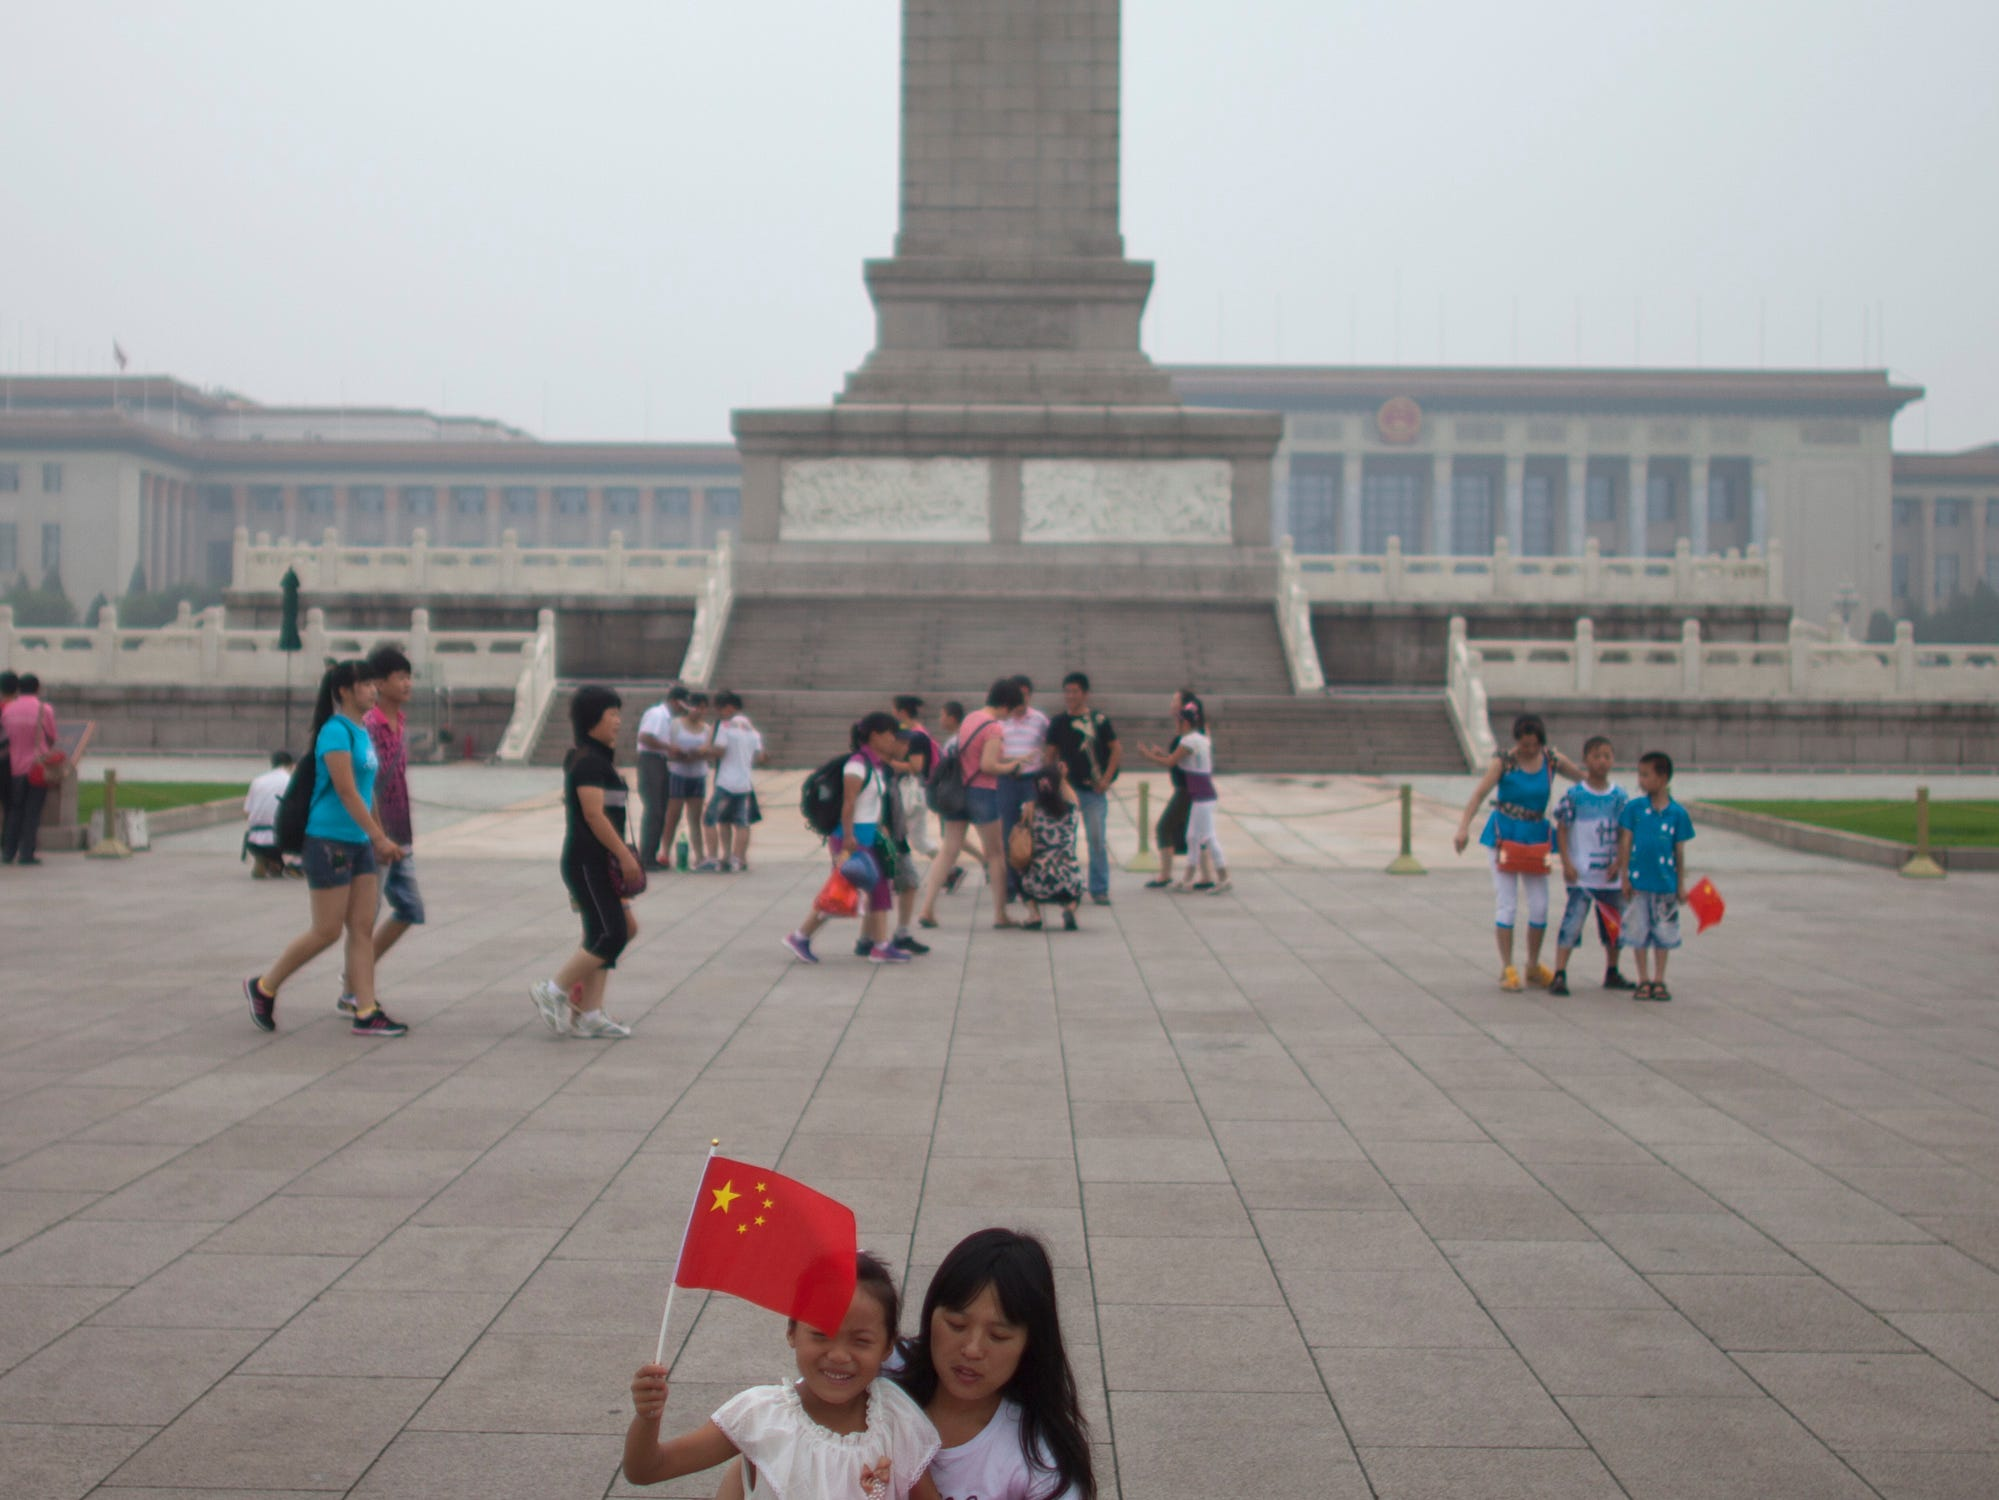 This is the Monument to the People's Heroes on the Tiananmen Square in Beijing. Tiananmen Square, the world's largest public square, is surrounded by buildings of political and cultural significance and is visited by thousands of tourists daily.